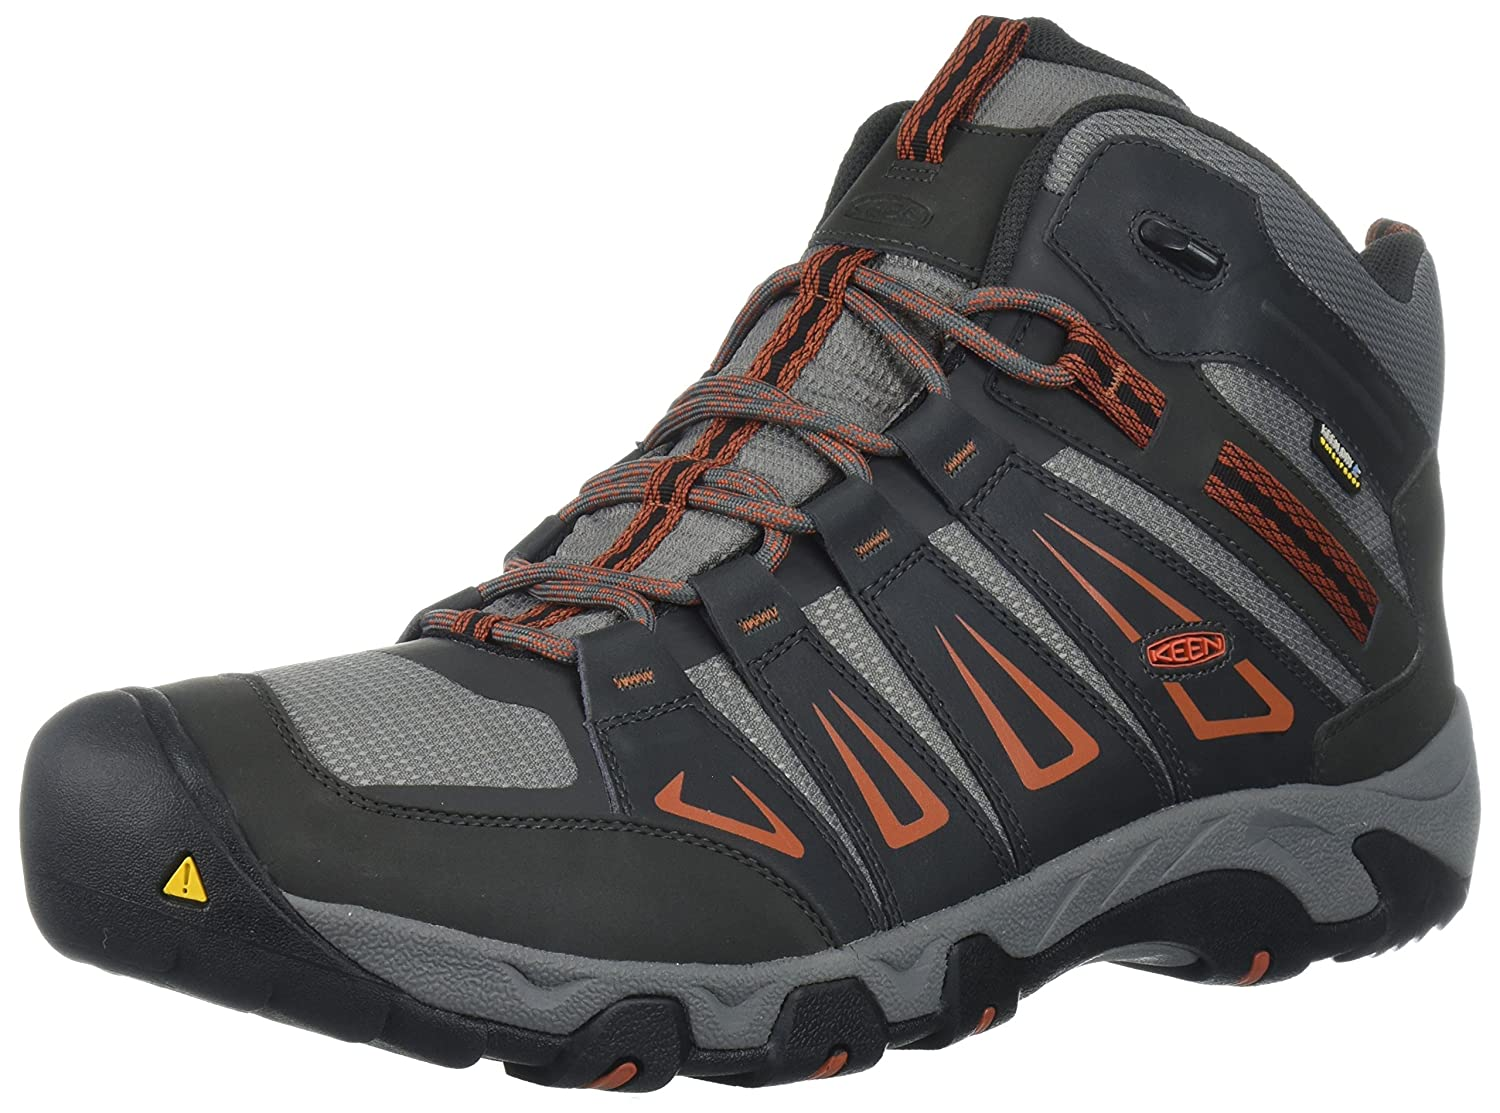 KEEN Men's Oakridge Mid Waterproof Hiking Boot Keen Adults - US SHOES 1015305-7.0